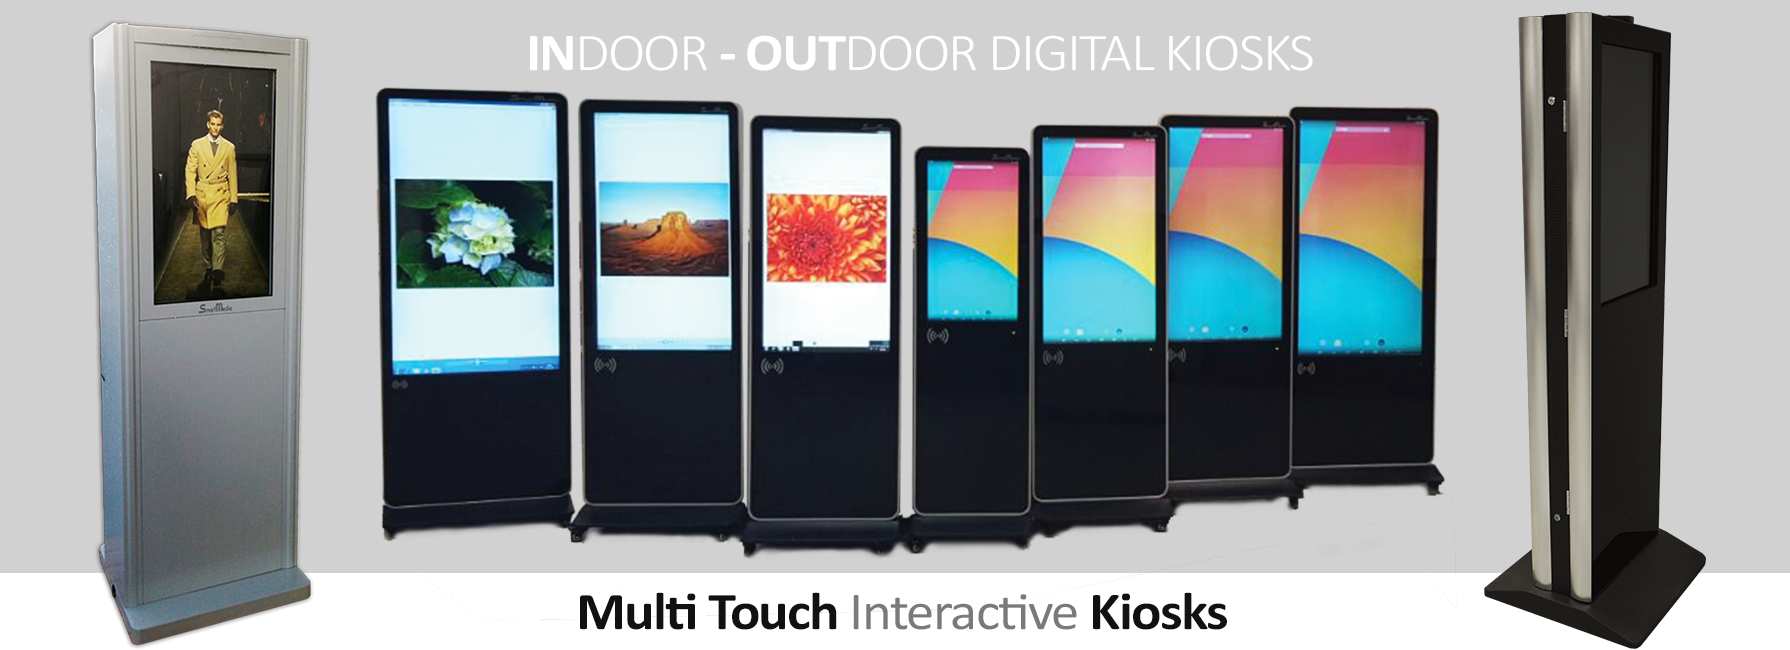 Multi Touch Kiosks, Interactive Kiosks by Smartmedia